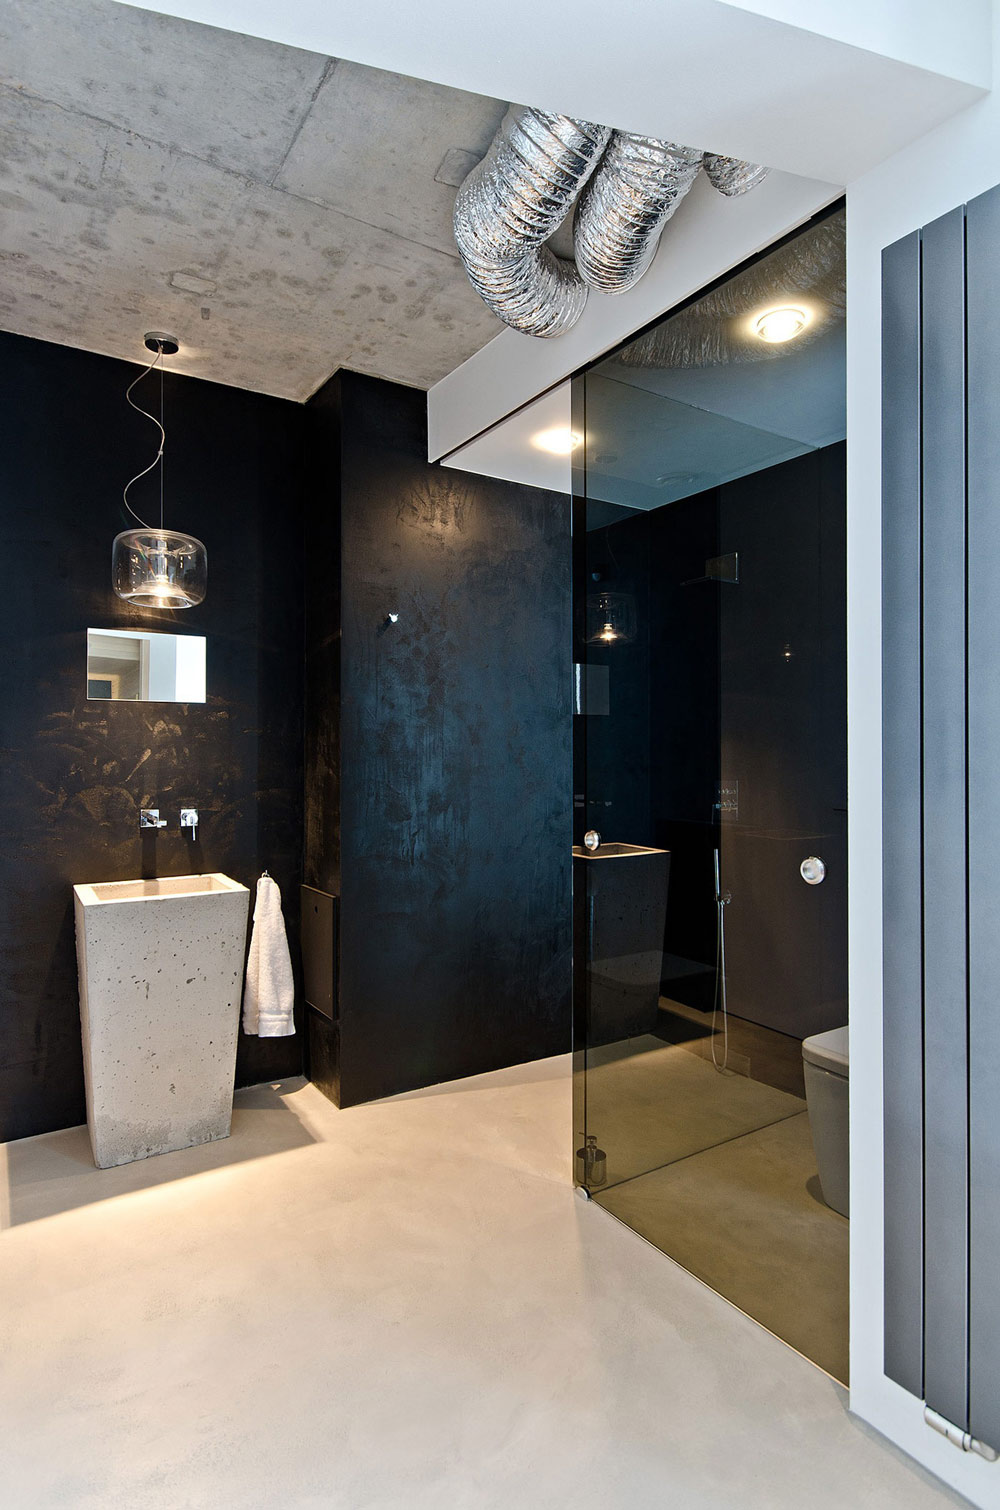 Concrete Sink, Dark Glass Cubical, Concrete Interior Design in Osice, Czech Republic